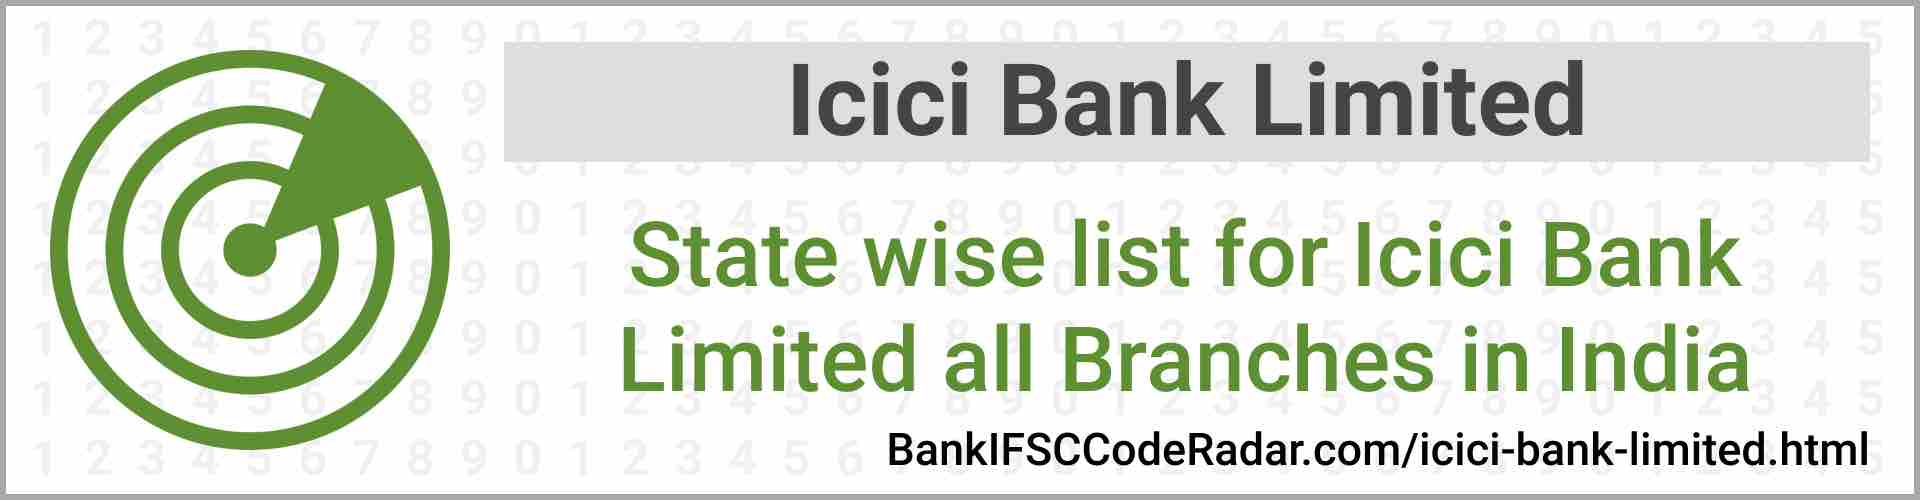 Icici Bank Limited All Branches India